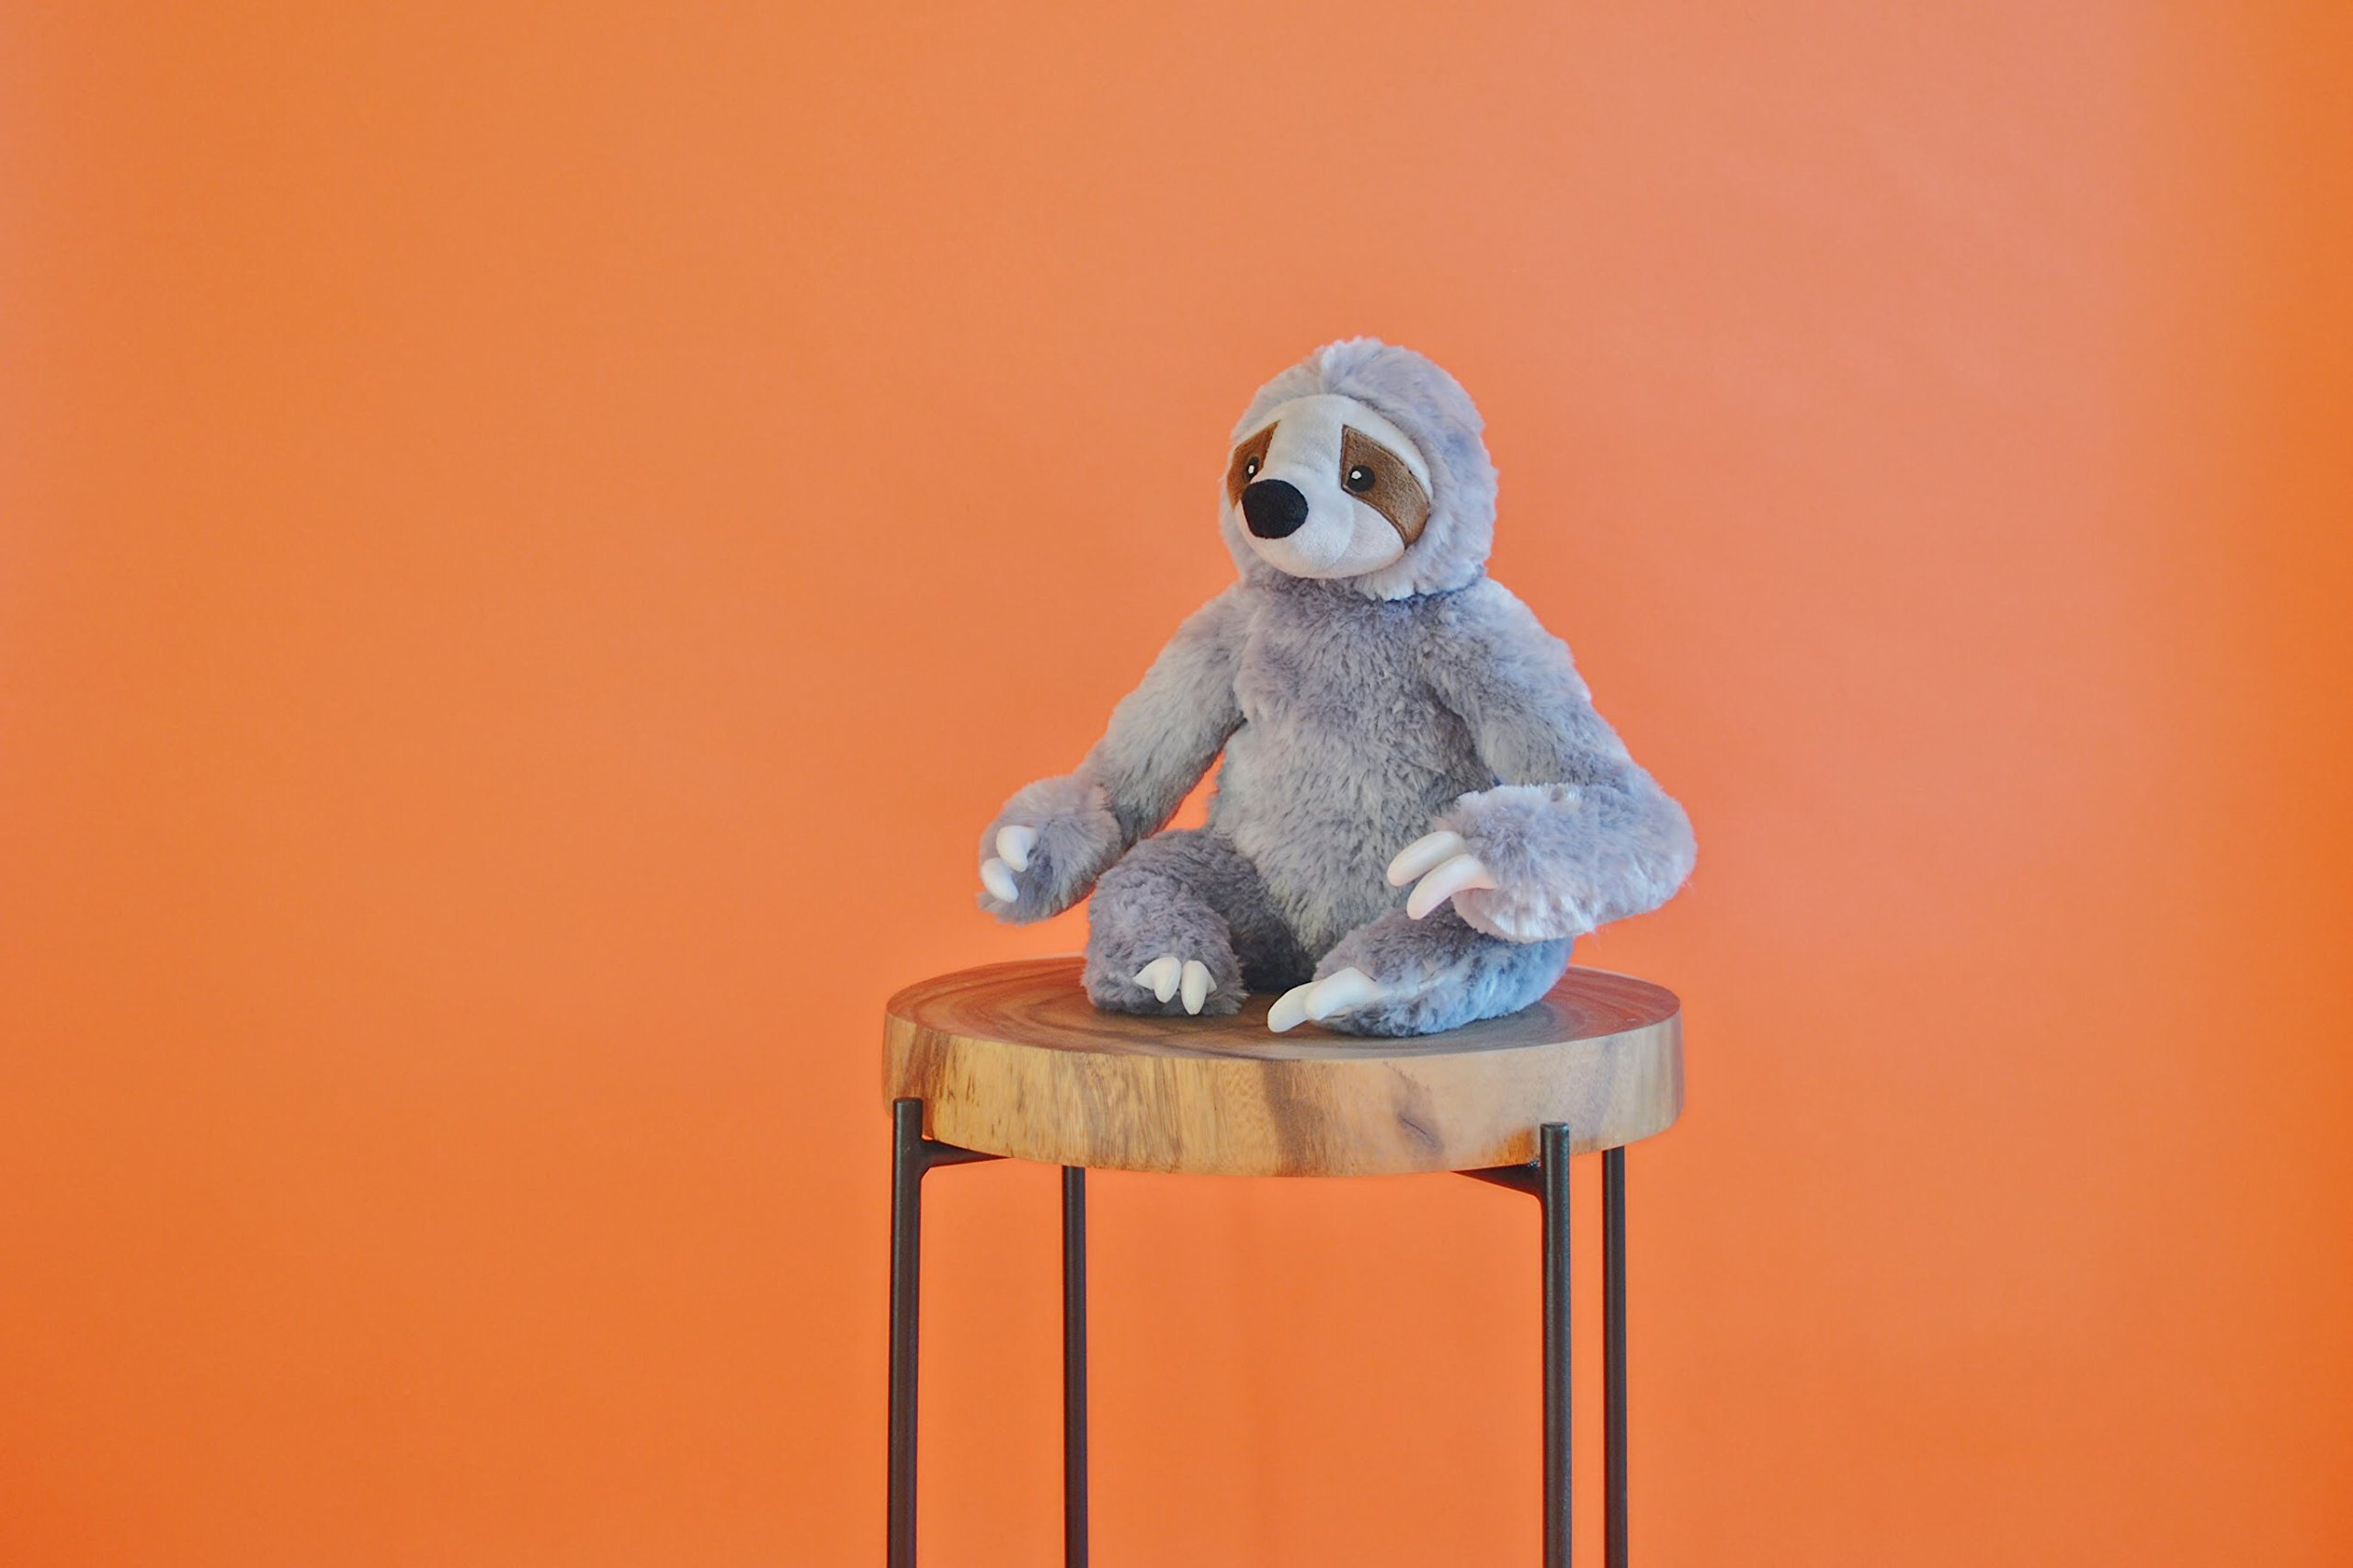 Stanley the Stinky Sloth, Farting Plush Dog Toy with Sound Insert by The Farting Dog Company (Image #4)